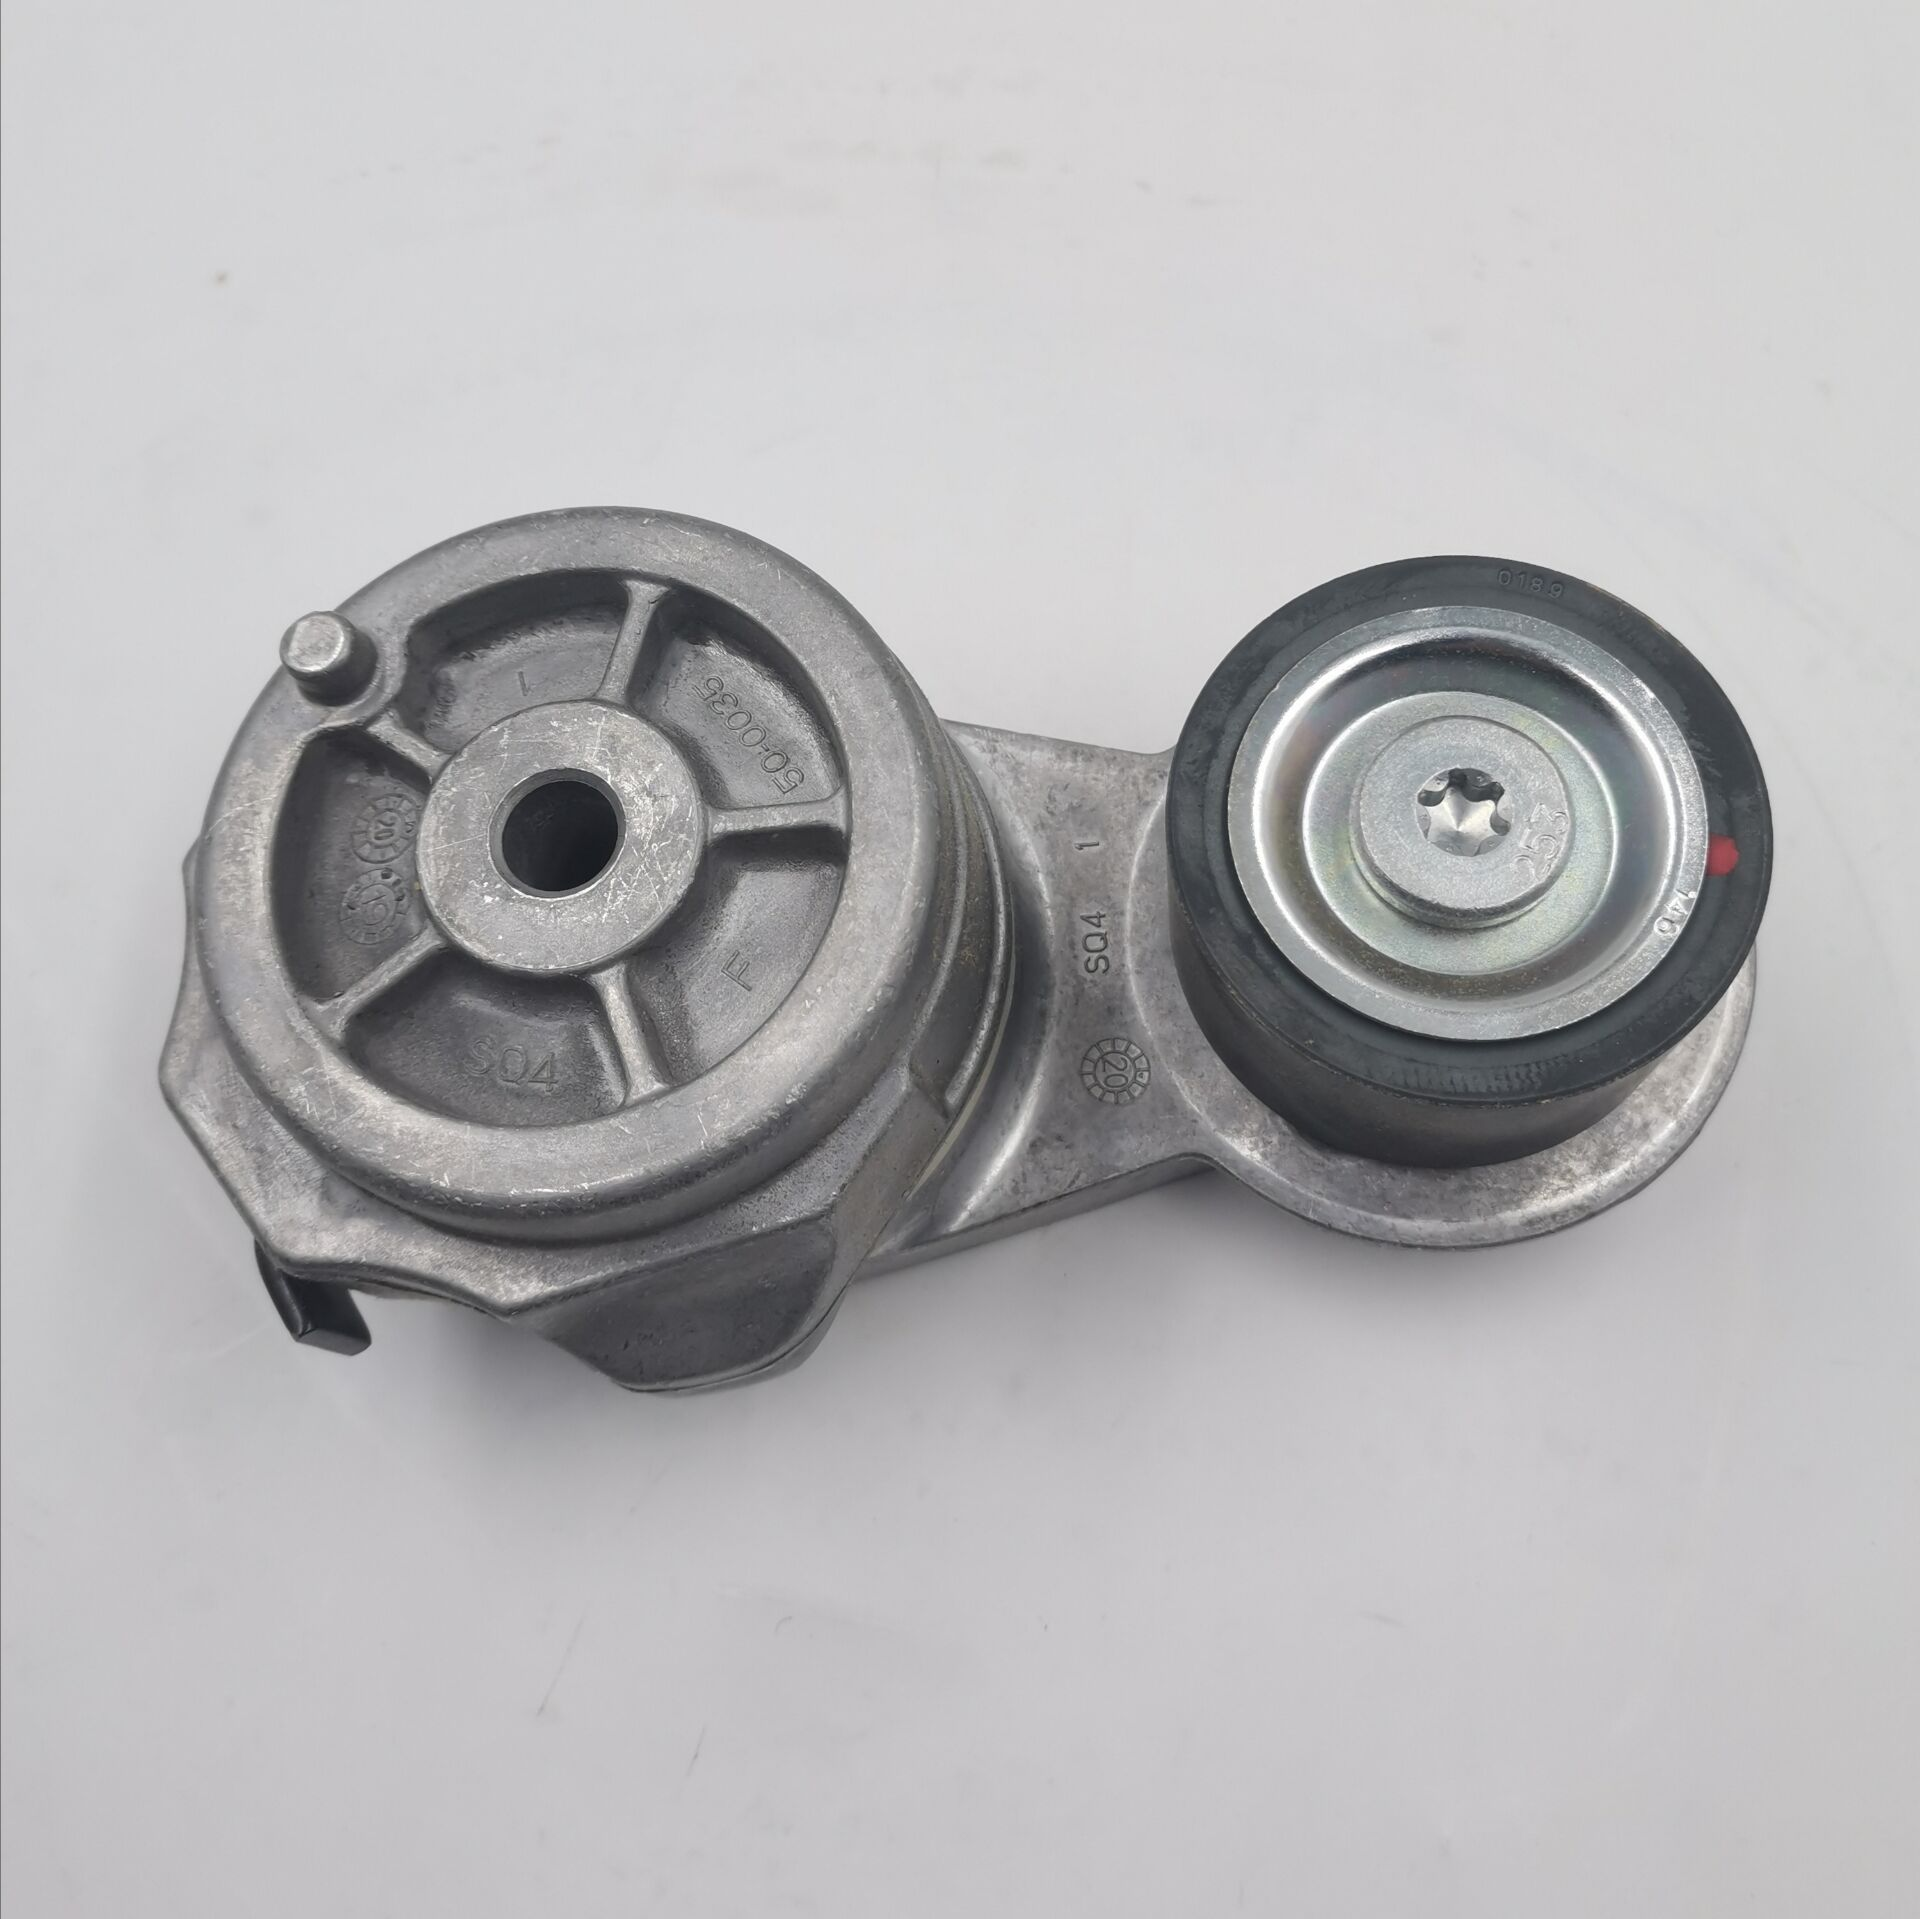 BELT TENSIONER 4937433 FIT FOR CUMMINS